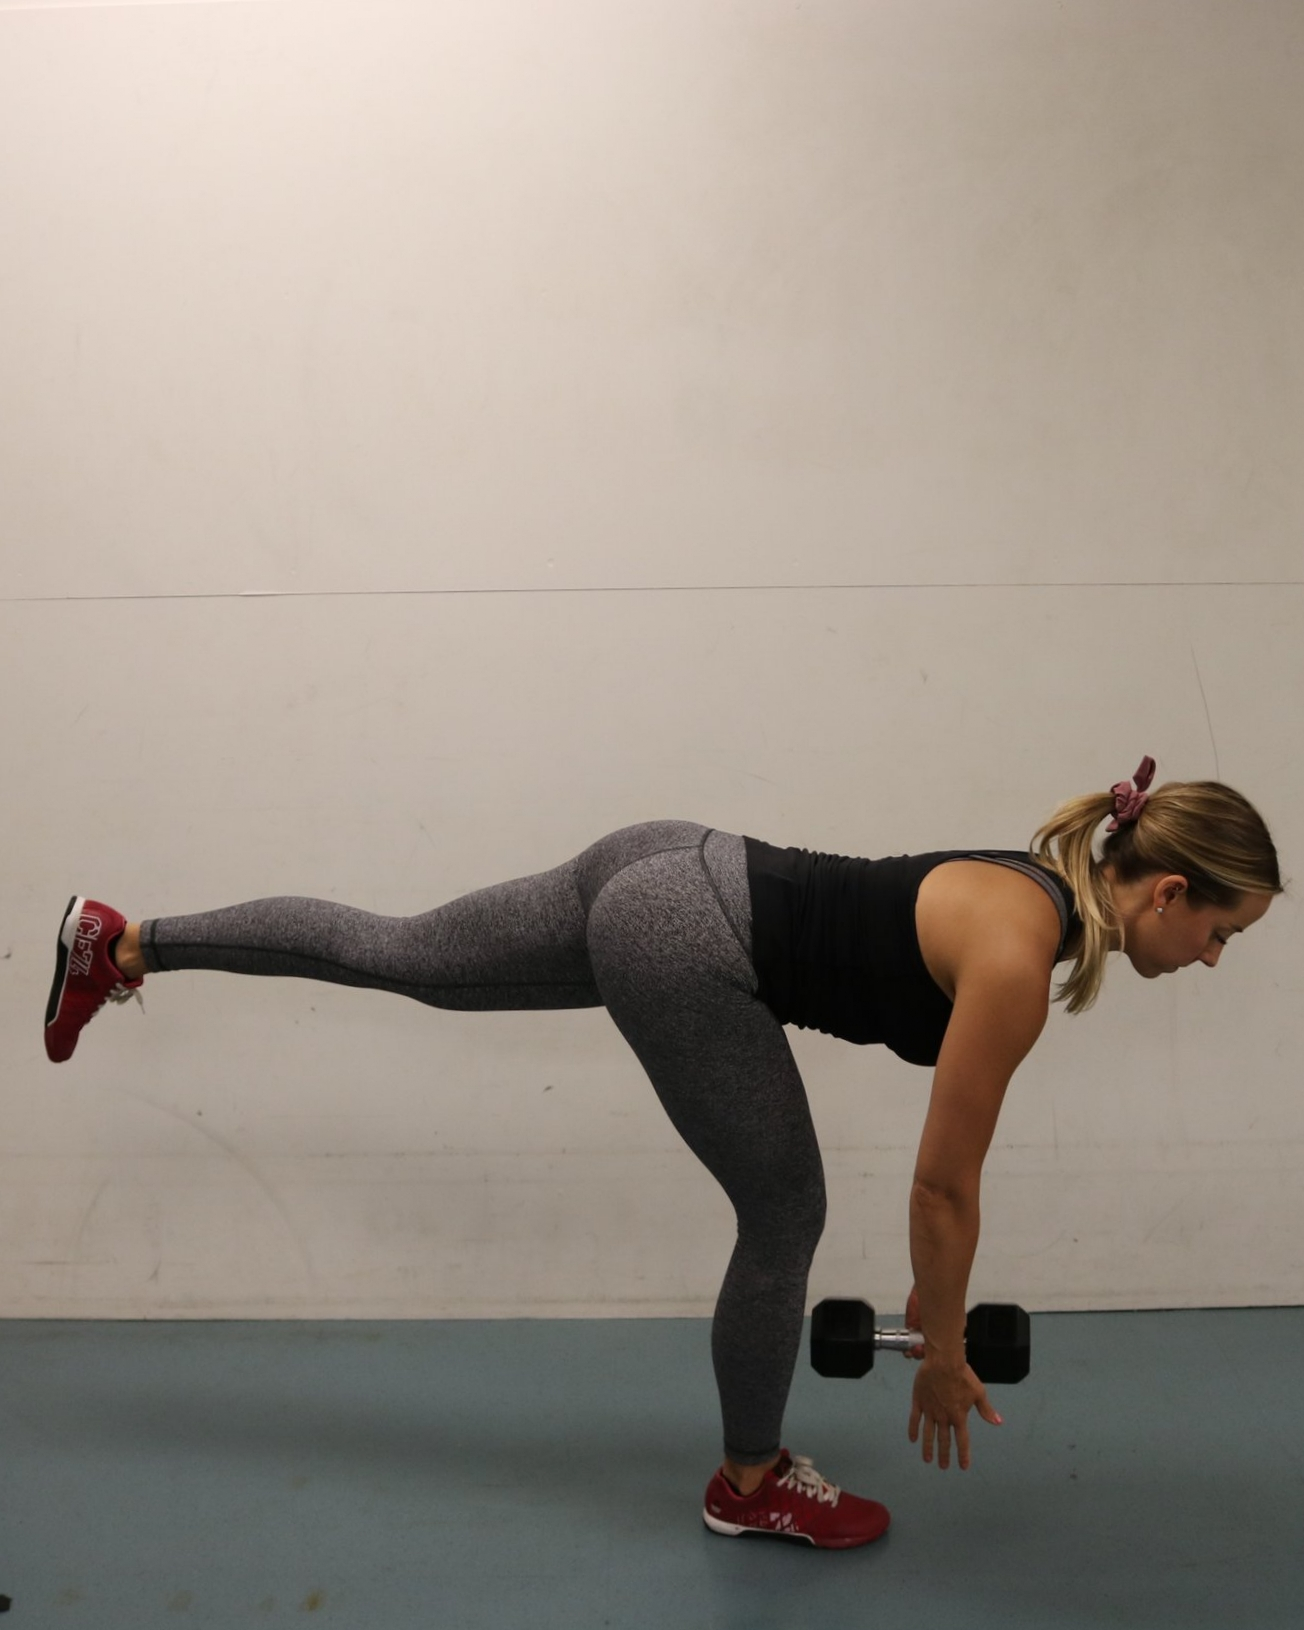 Keep knee soft and push hips back